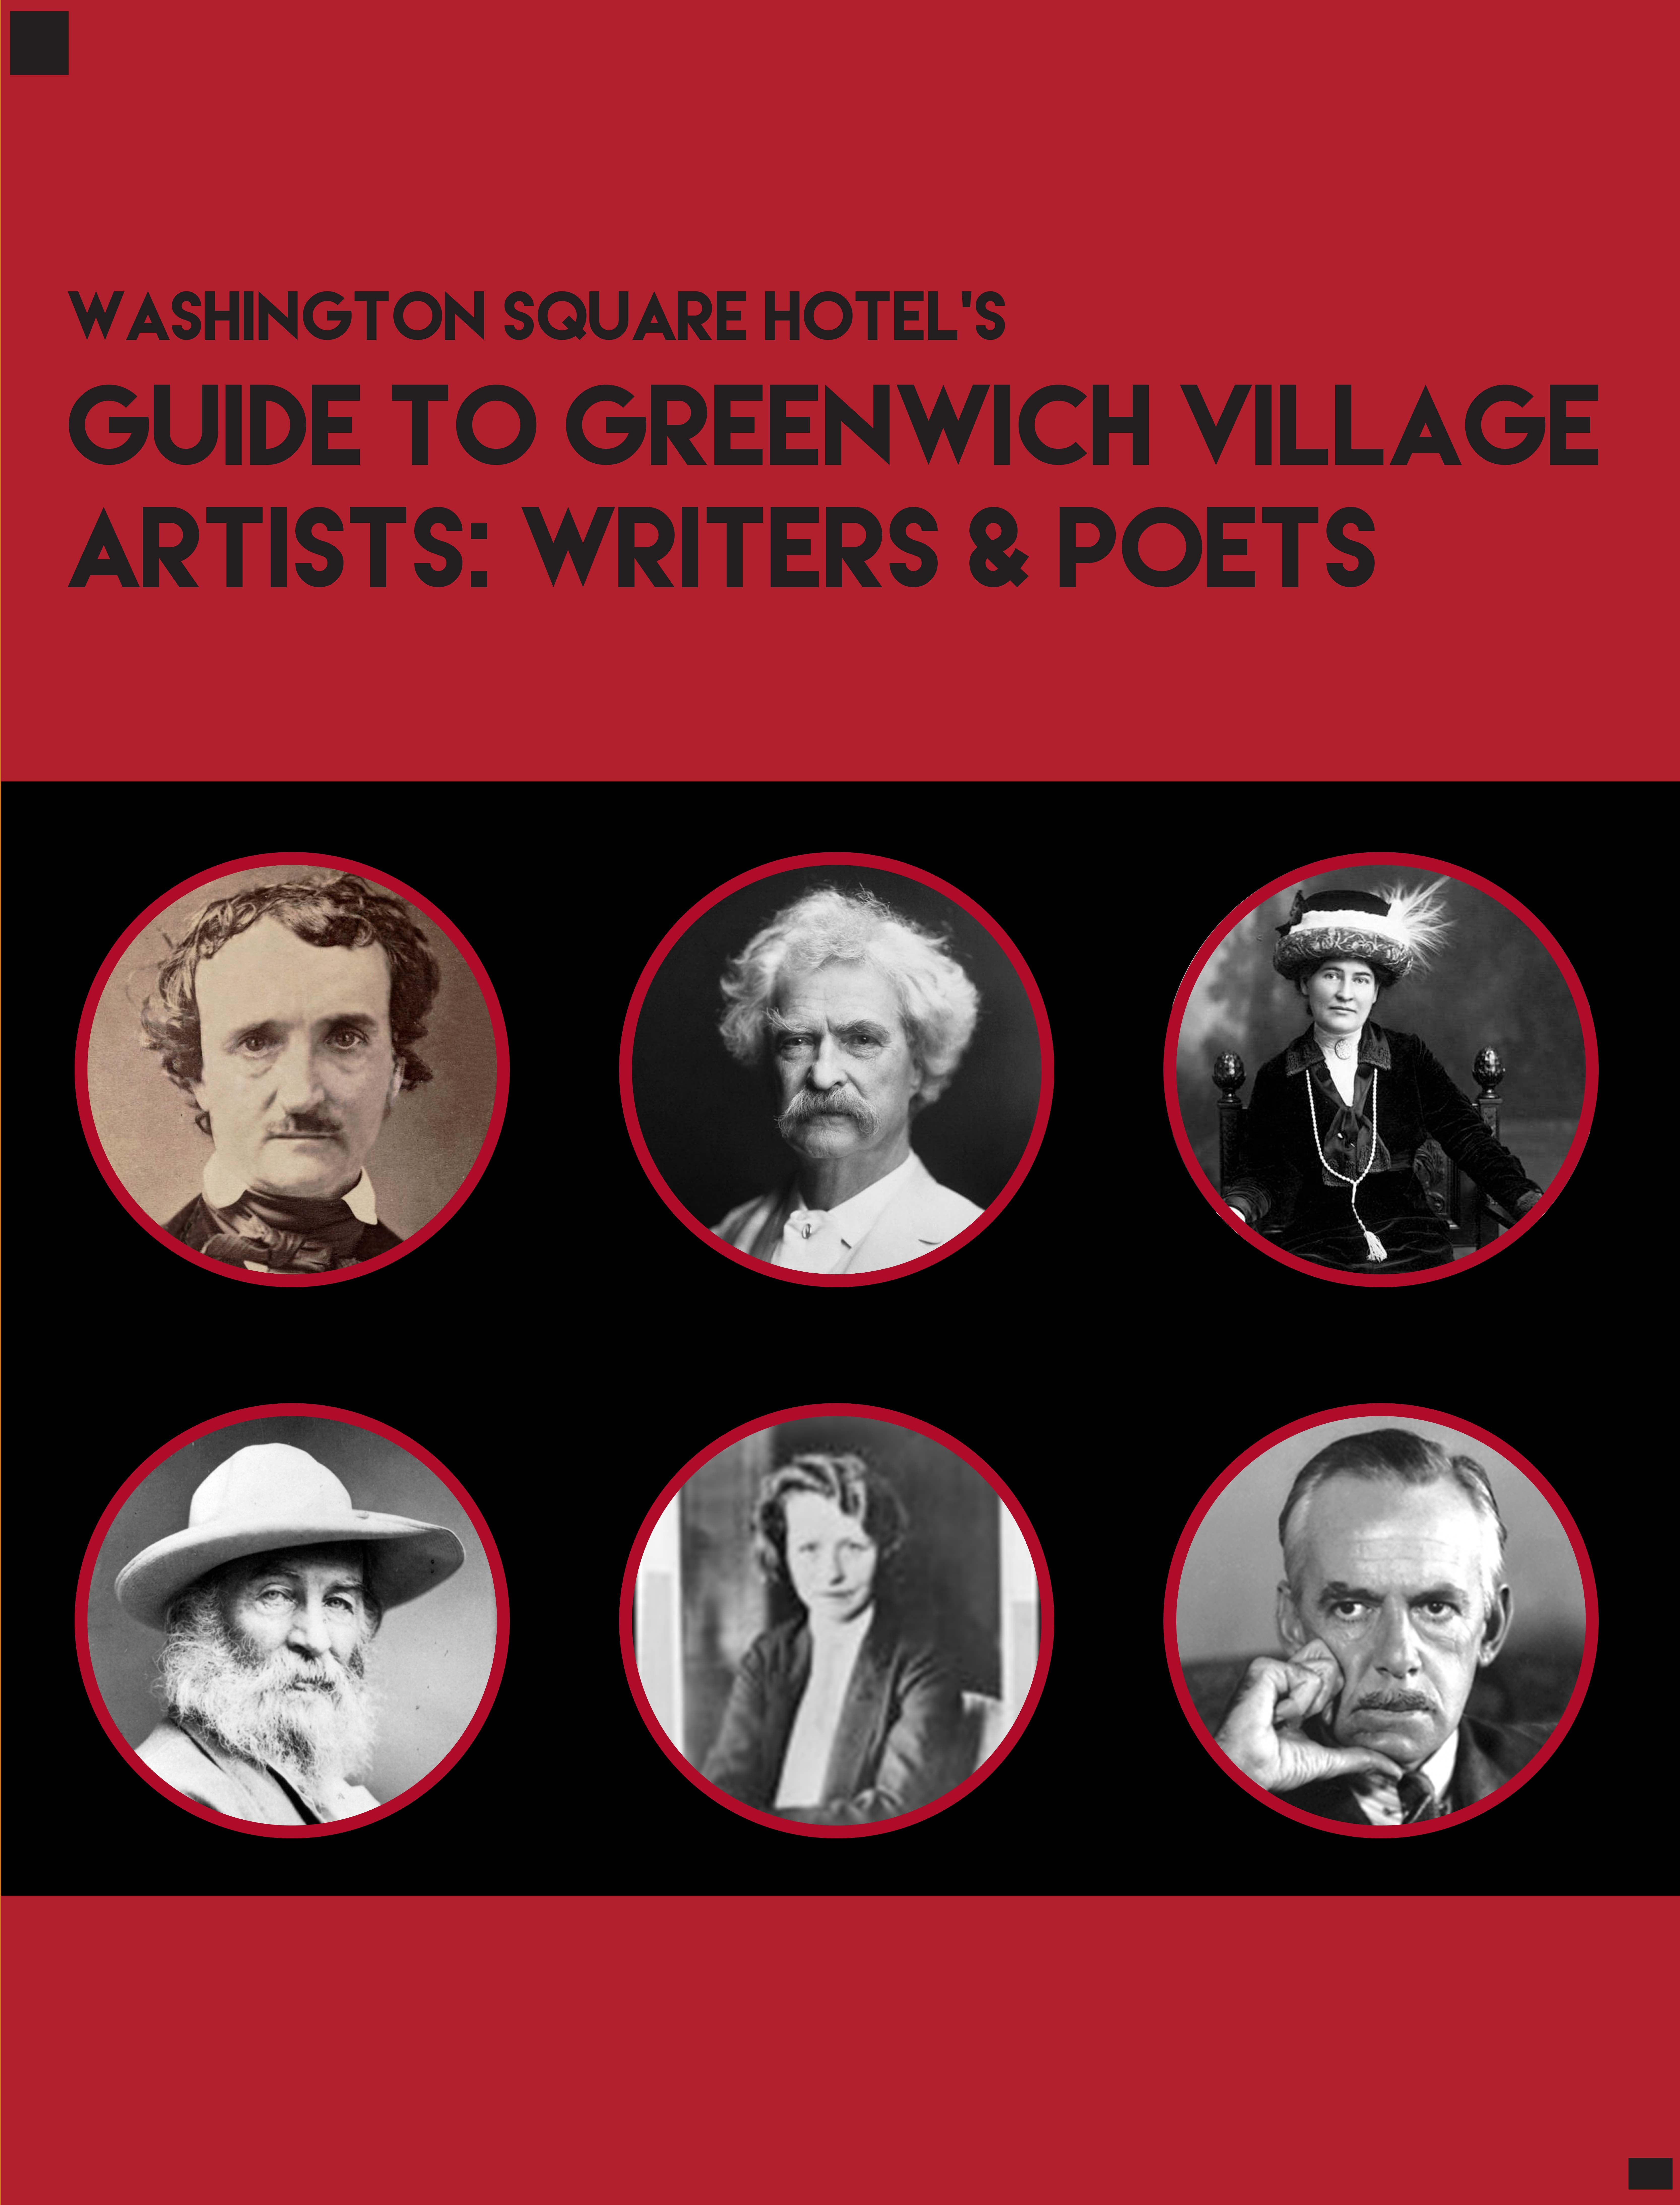 GV-Artists-Poets-Writers-COVER.jpg